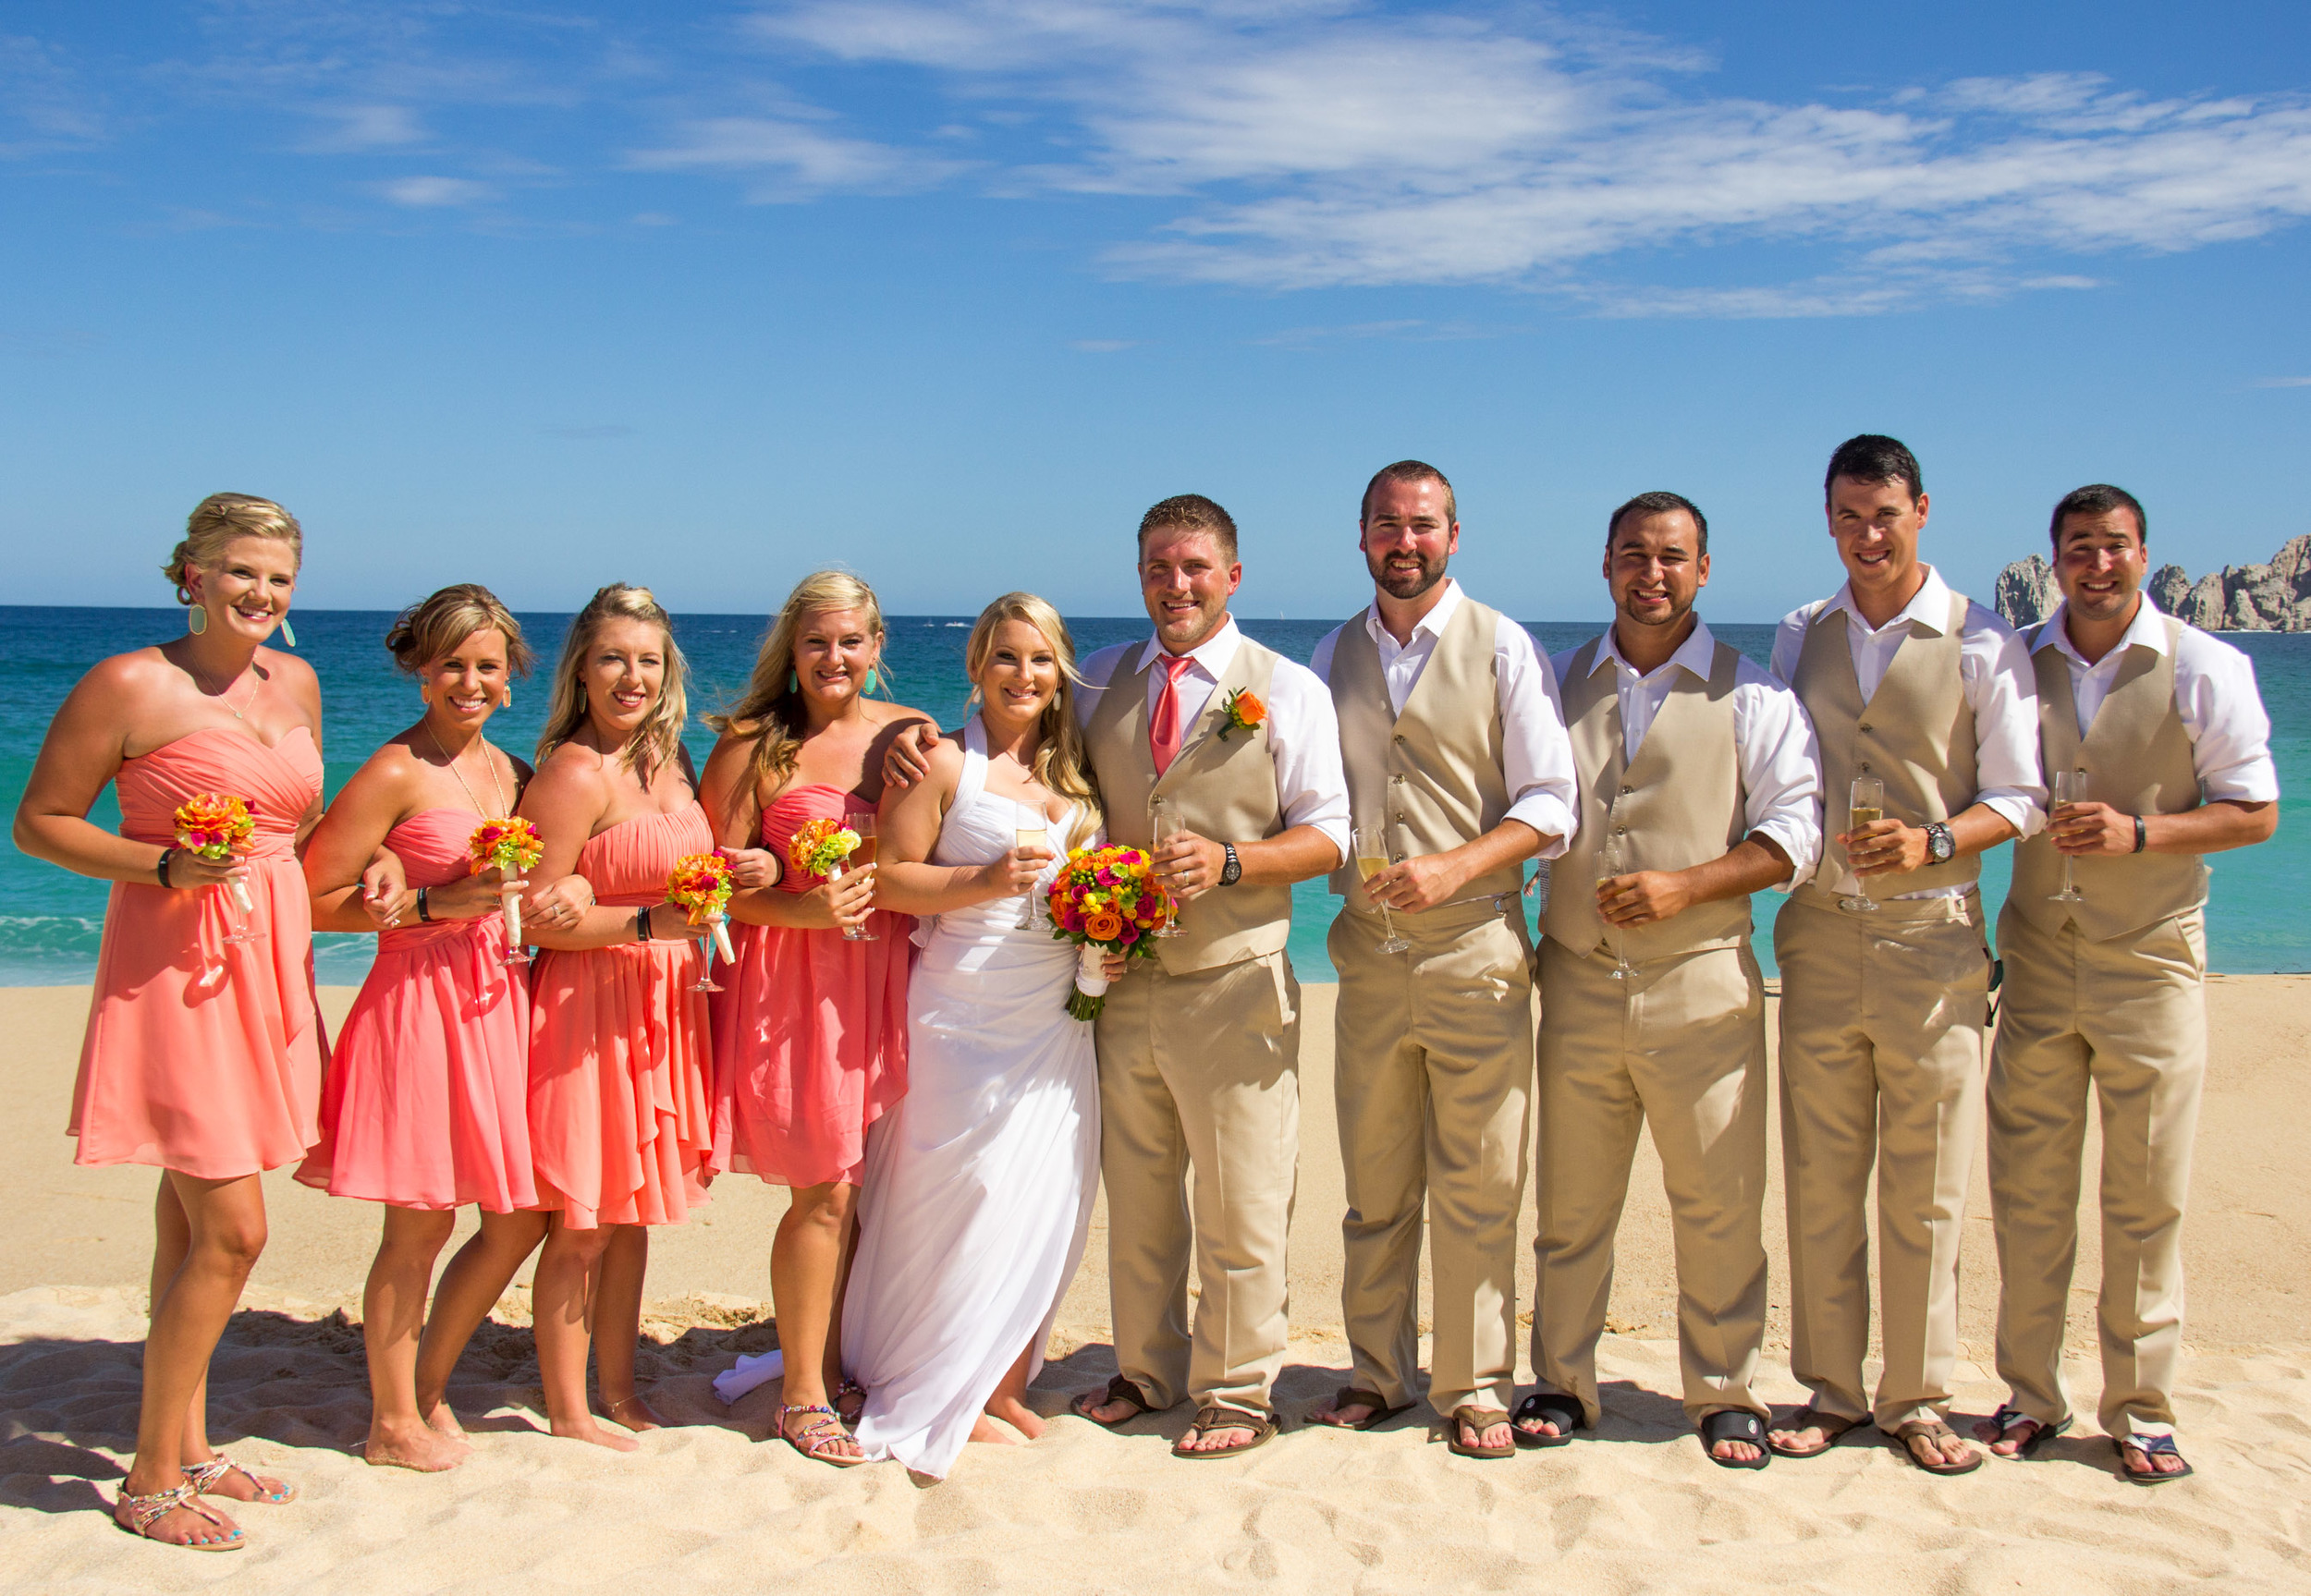 LangfordWeddingCabo2015-0216.jpg